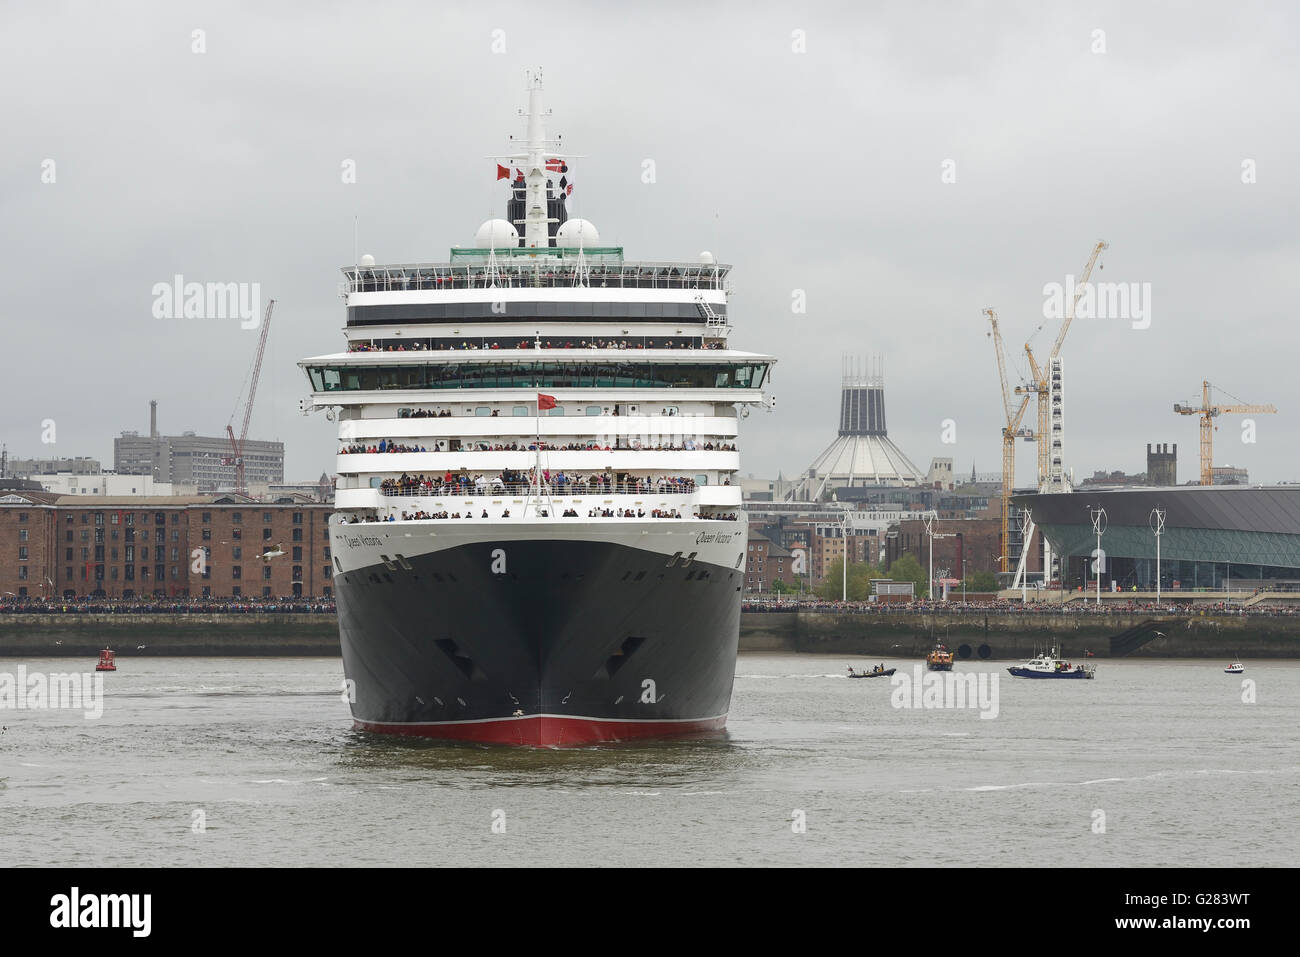 Cunard Queen Victoria on the River Mersey in Liverpool - Stock Image